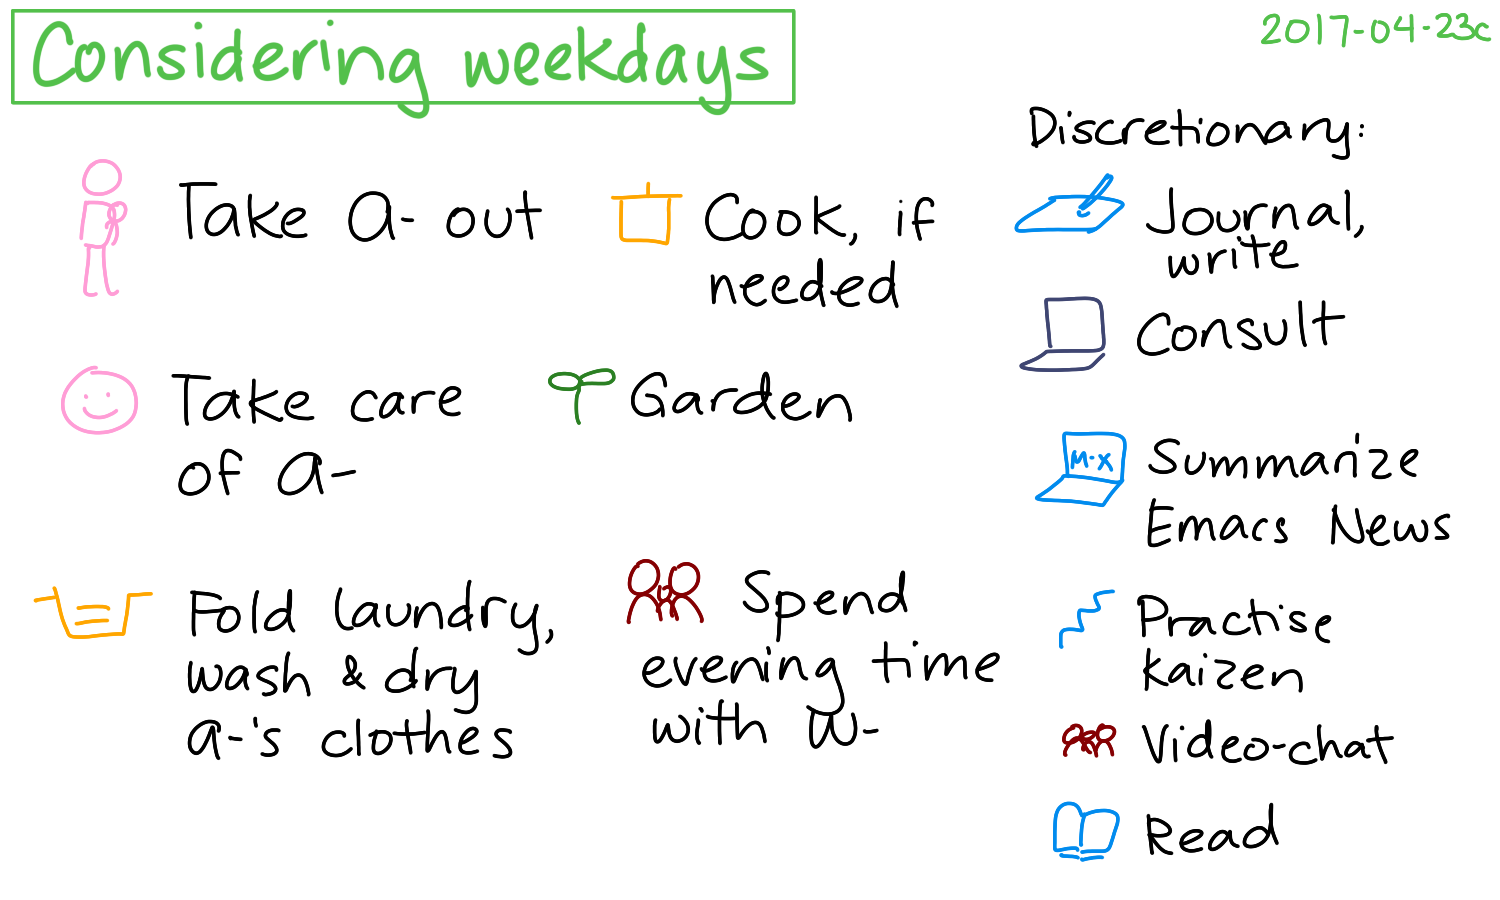 2017-04-23c Considering weekdays #time #routines.png